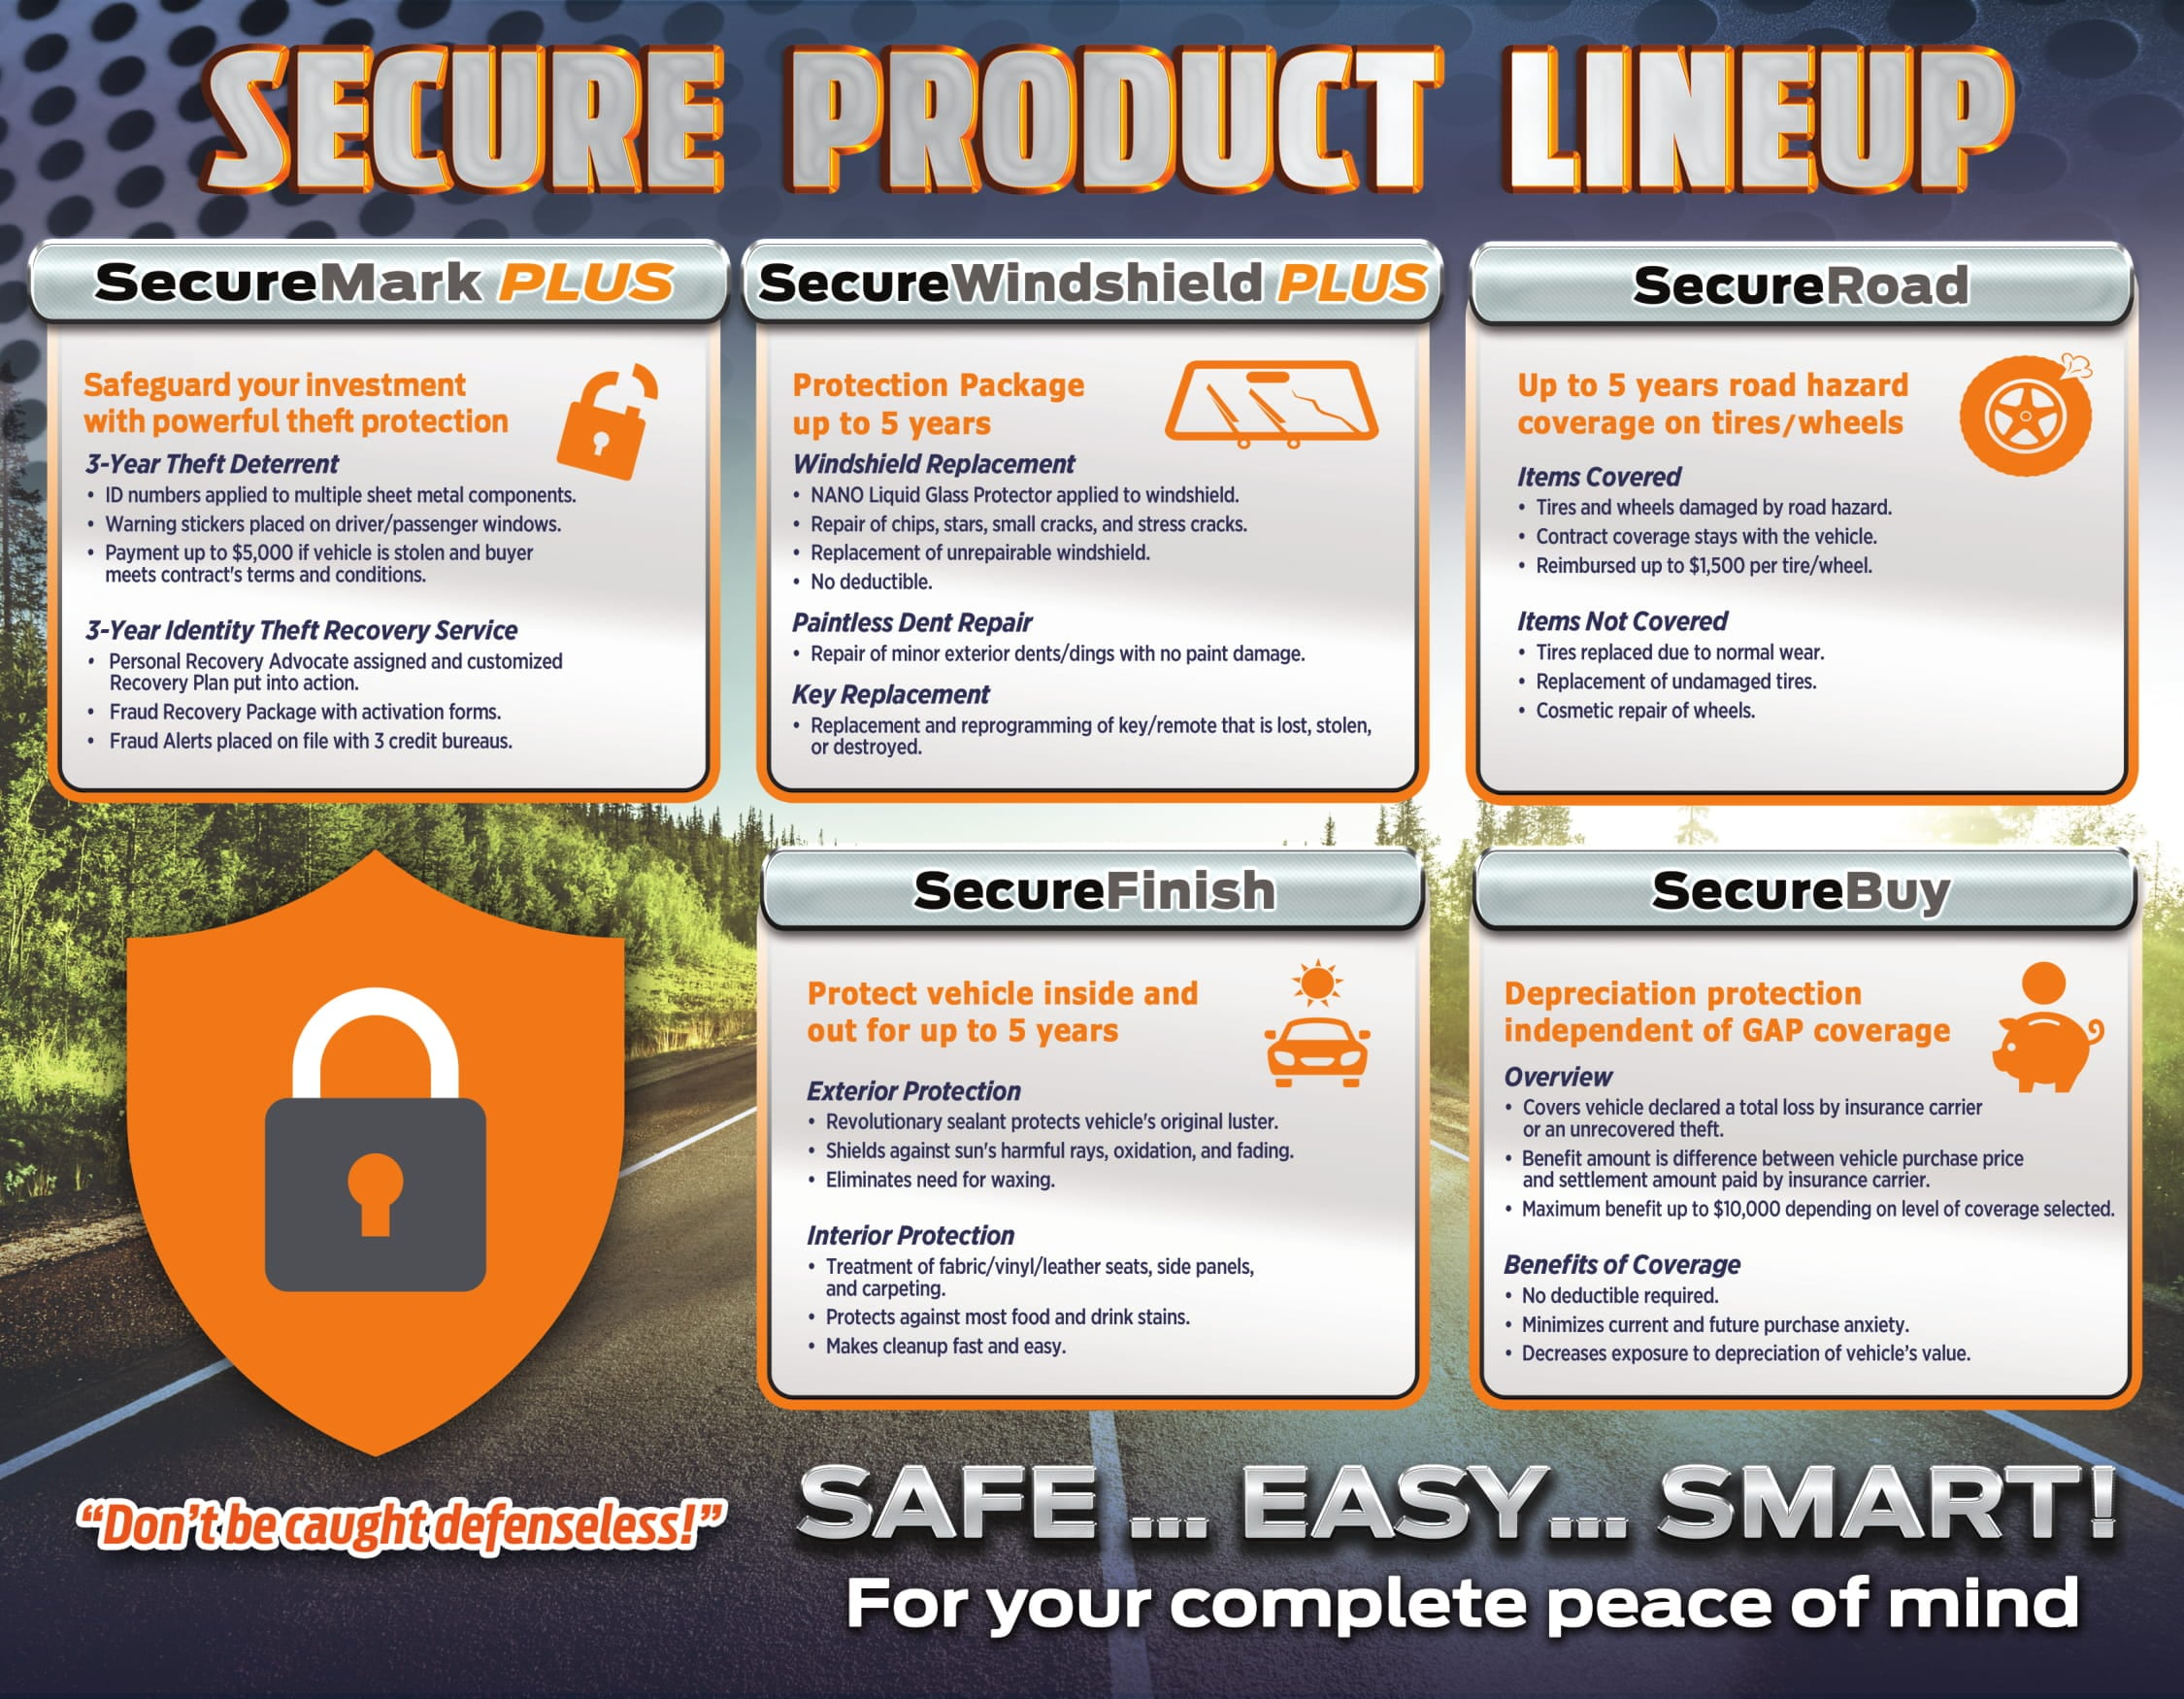 Ford secure product lineup infographic